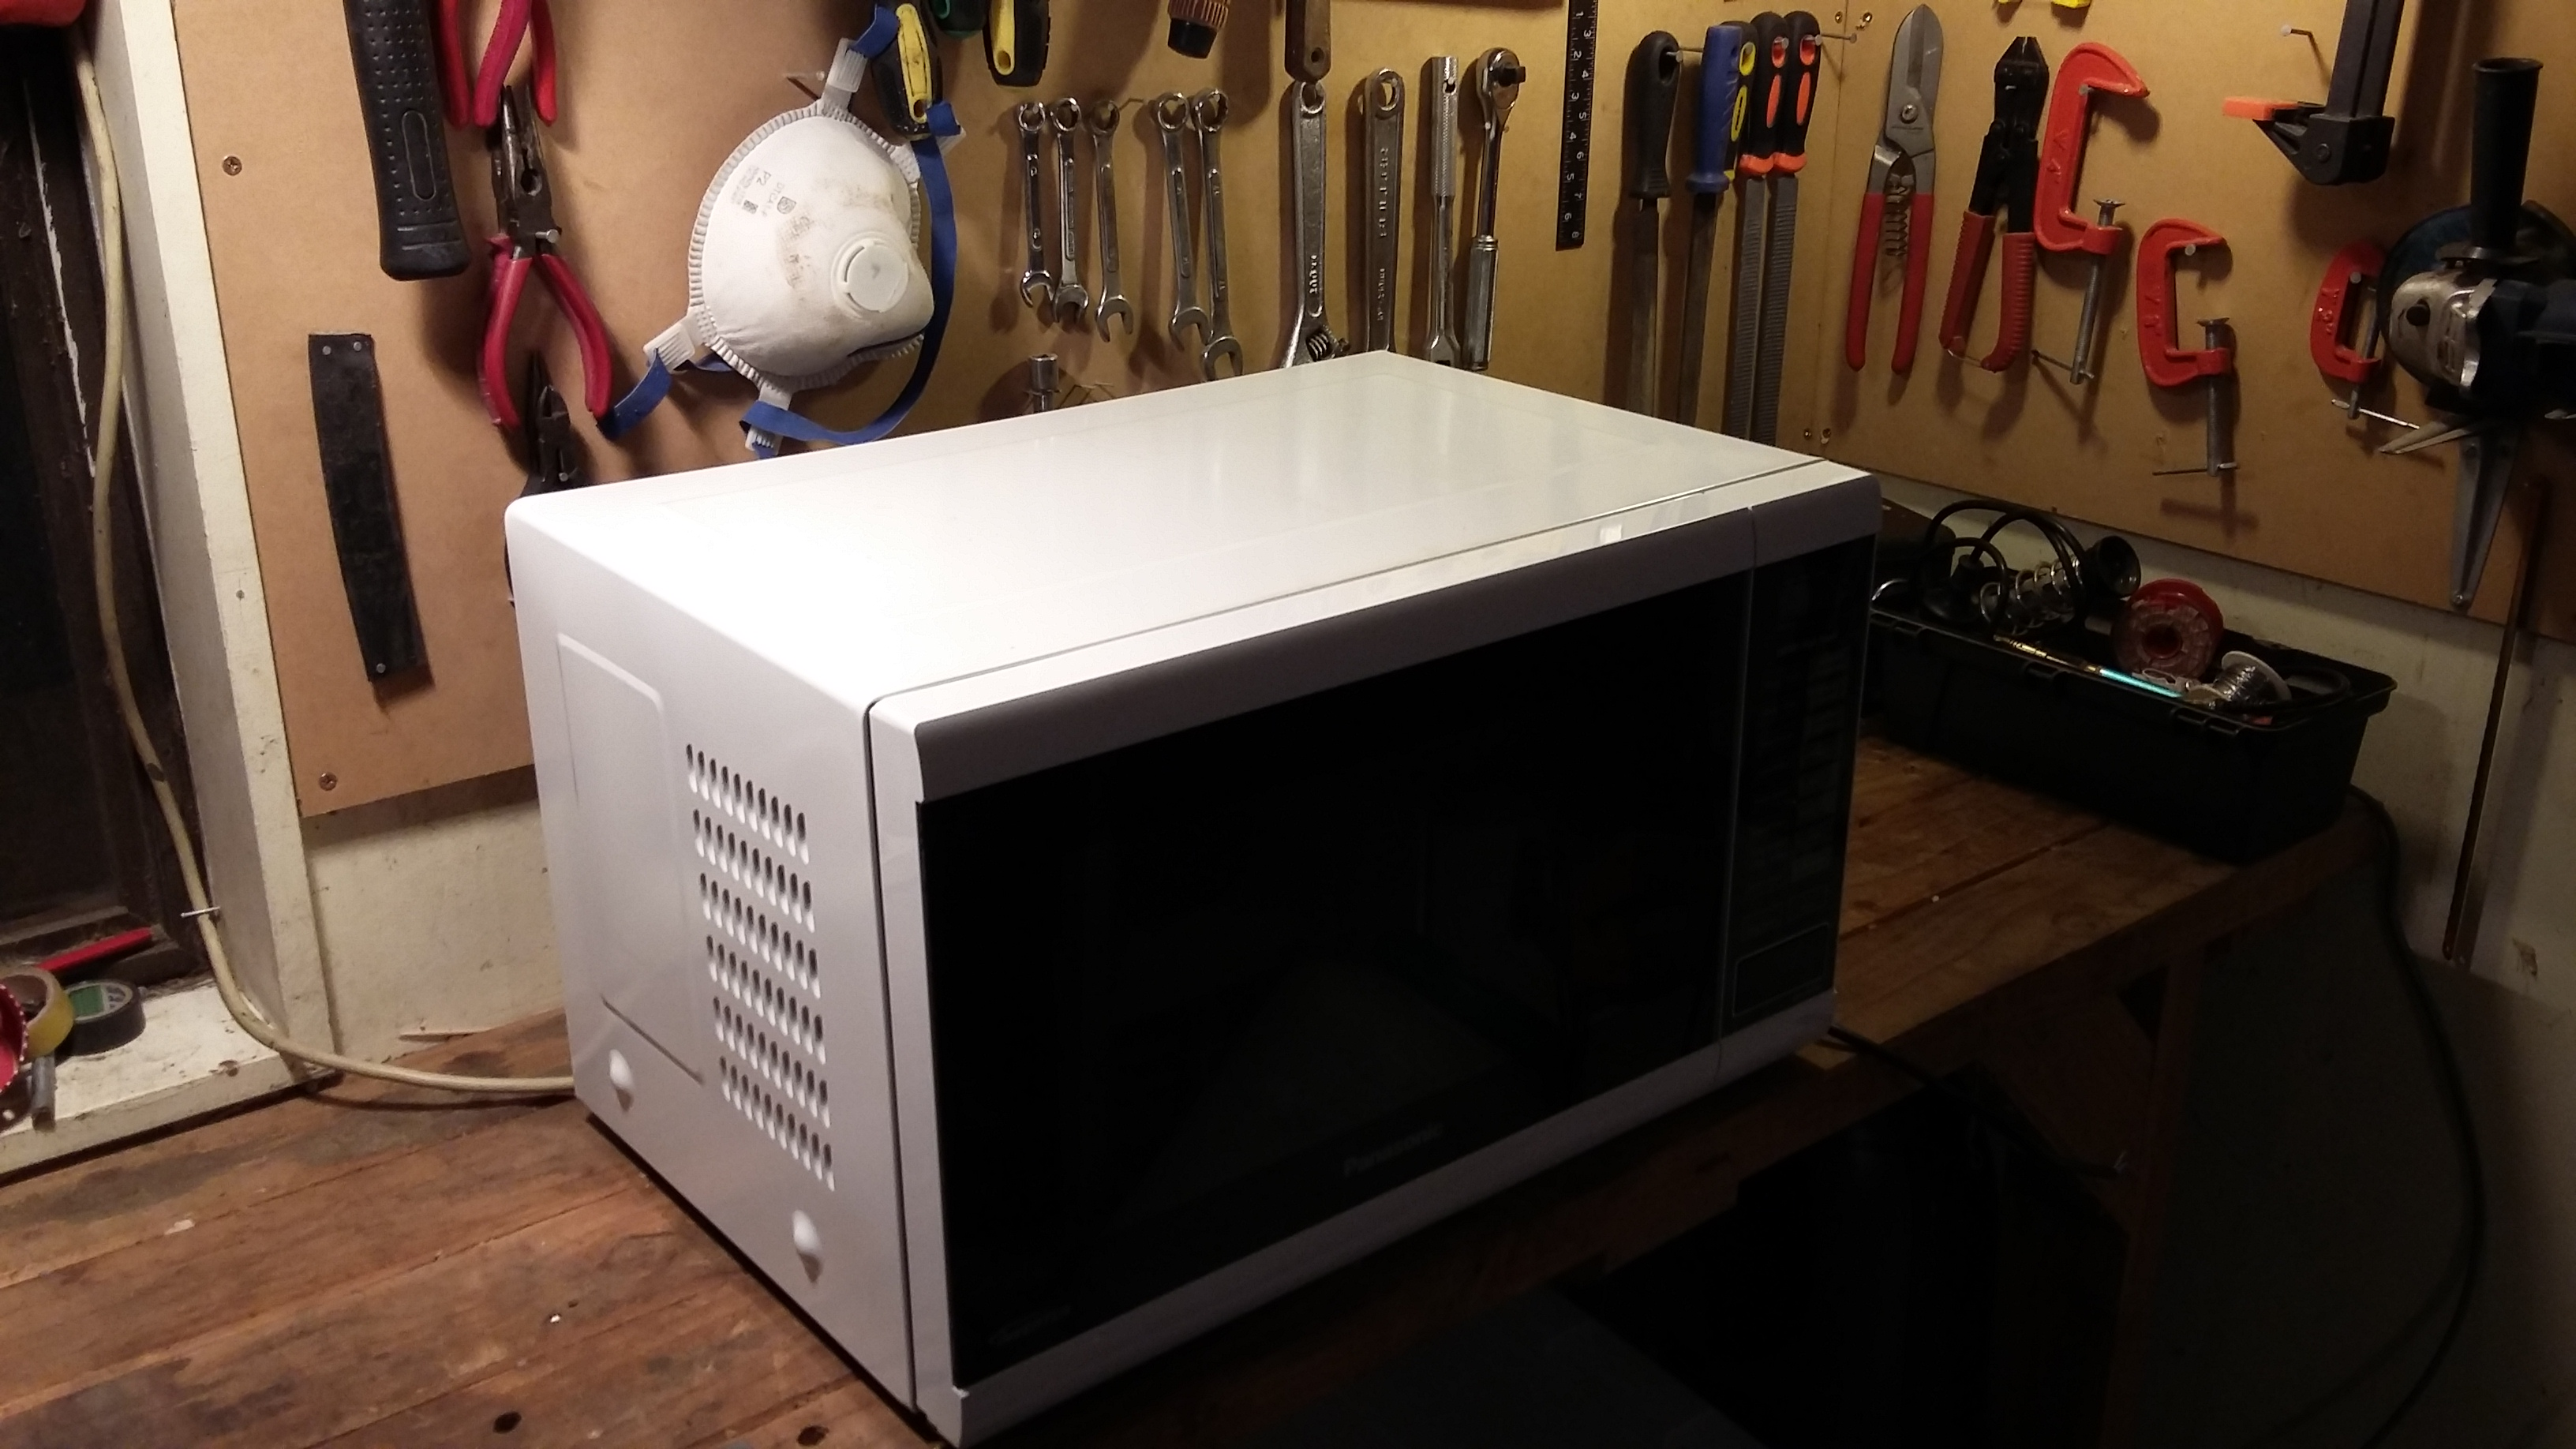 Picked Up A Broken Microwave From Freecycle 20170702 194647